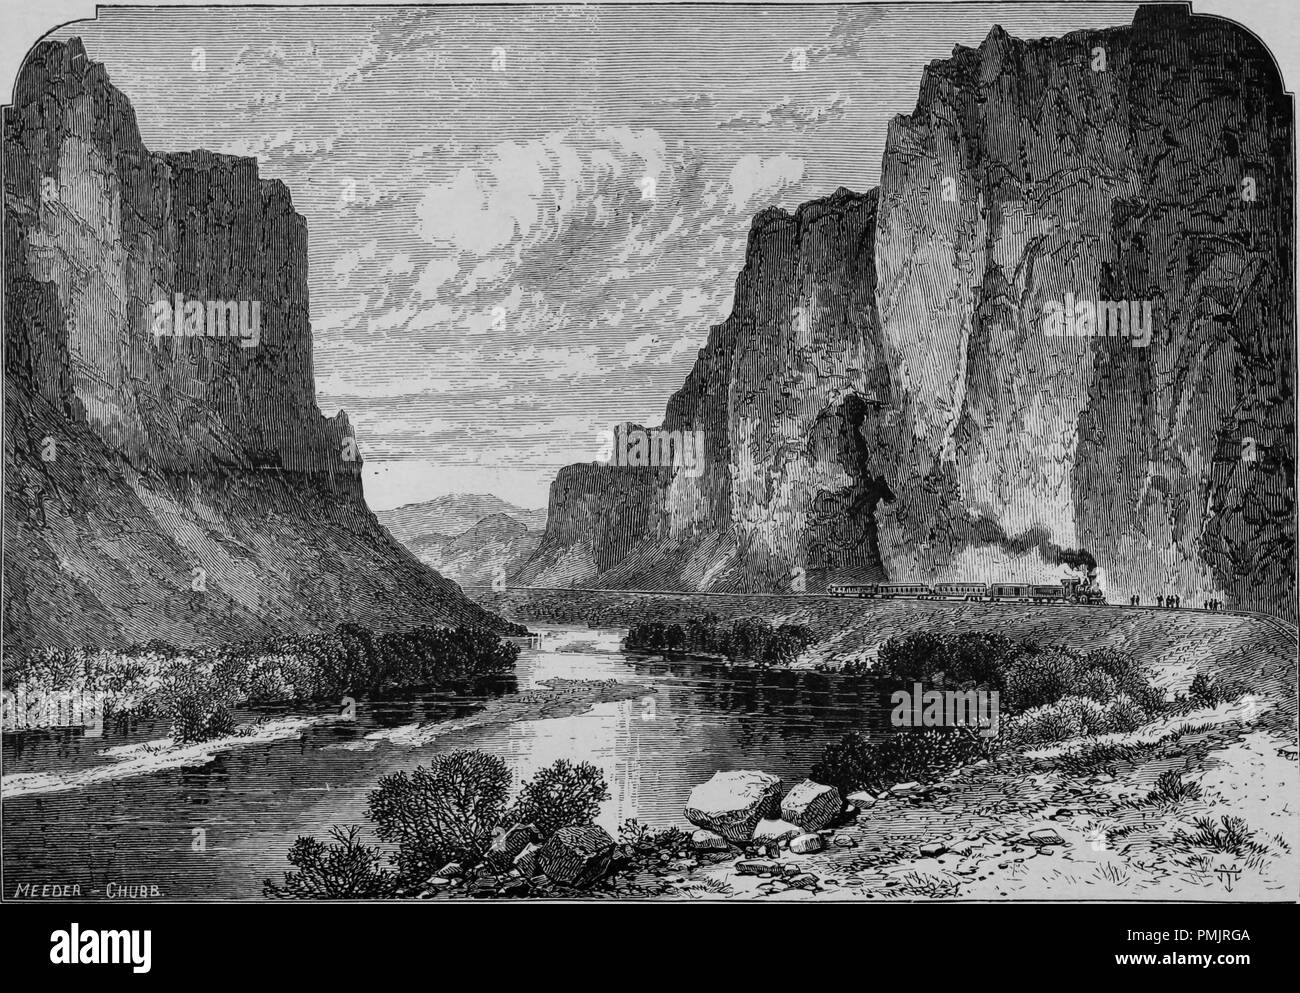 Engraving of the Humboldt River flowing through Palisade Canyon in Nevada, from the book 'The Pacific tourist', 1877. Courtesy Internet Archive. () - Stock Image